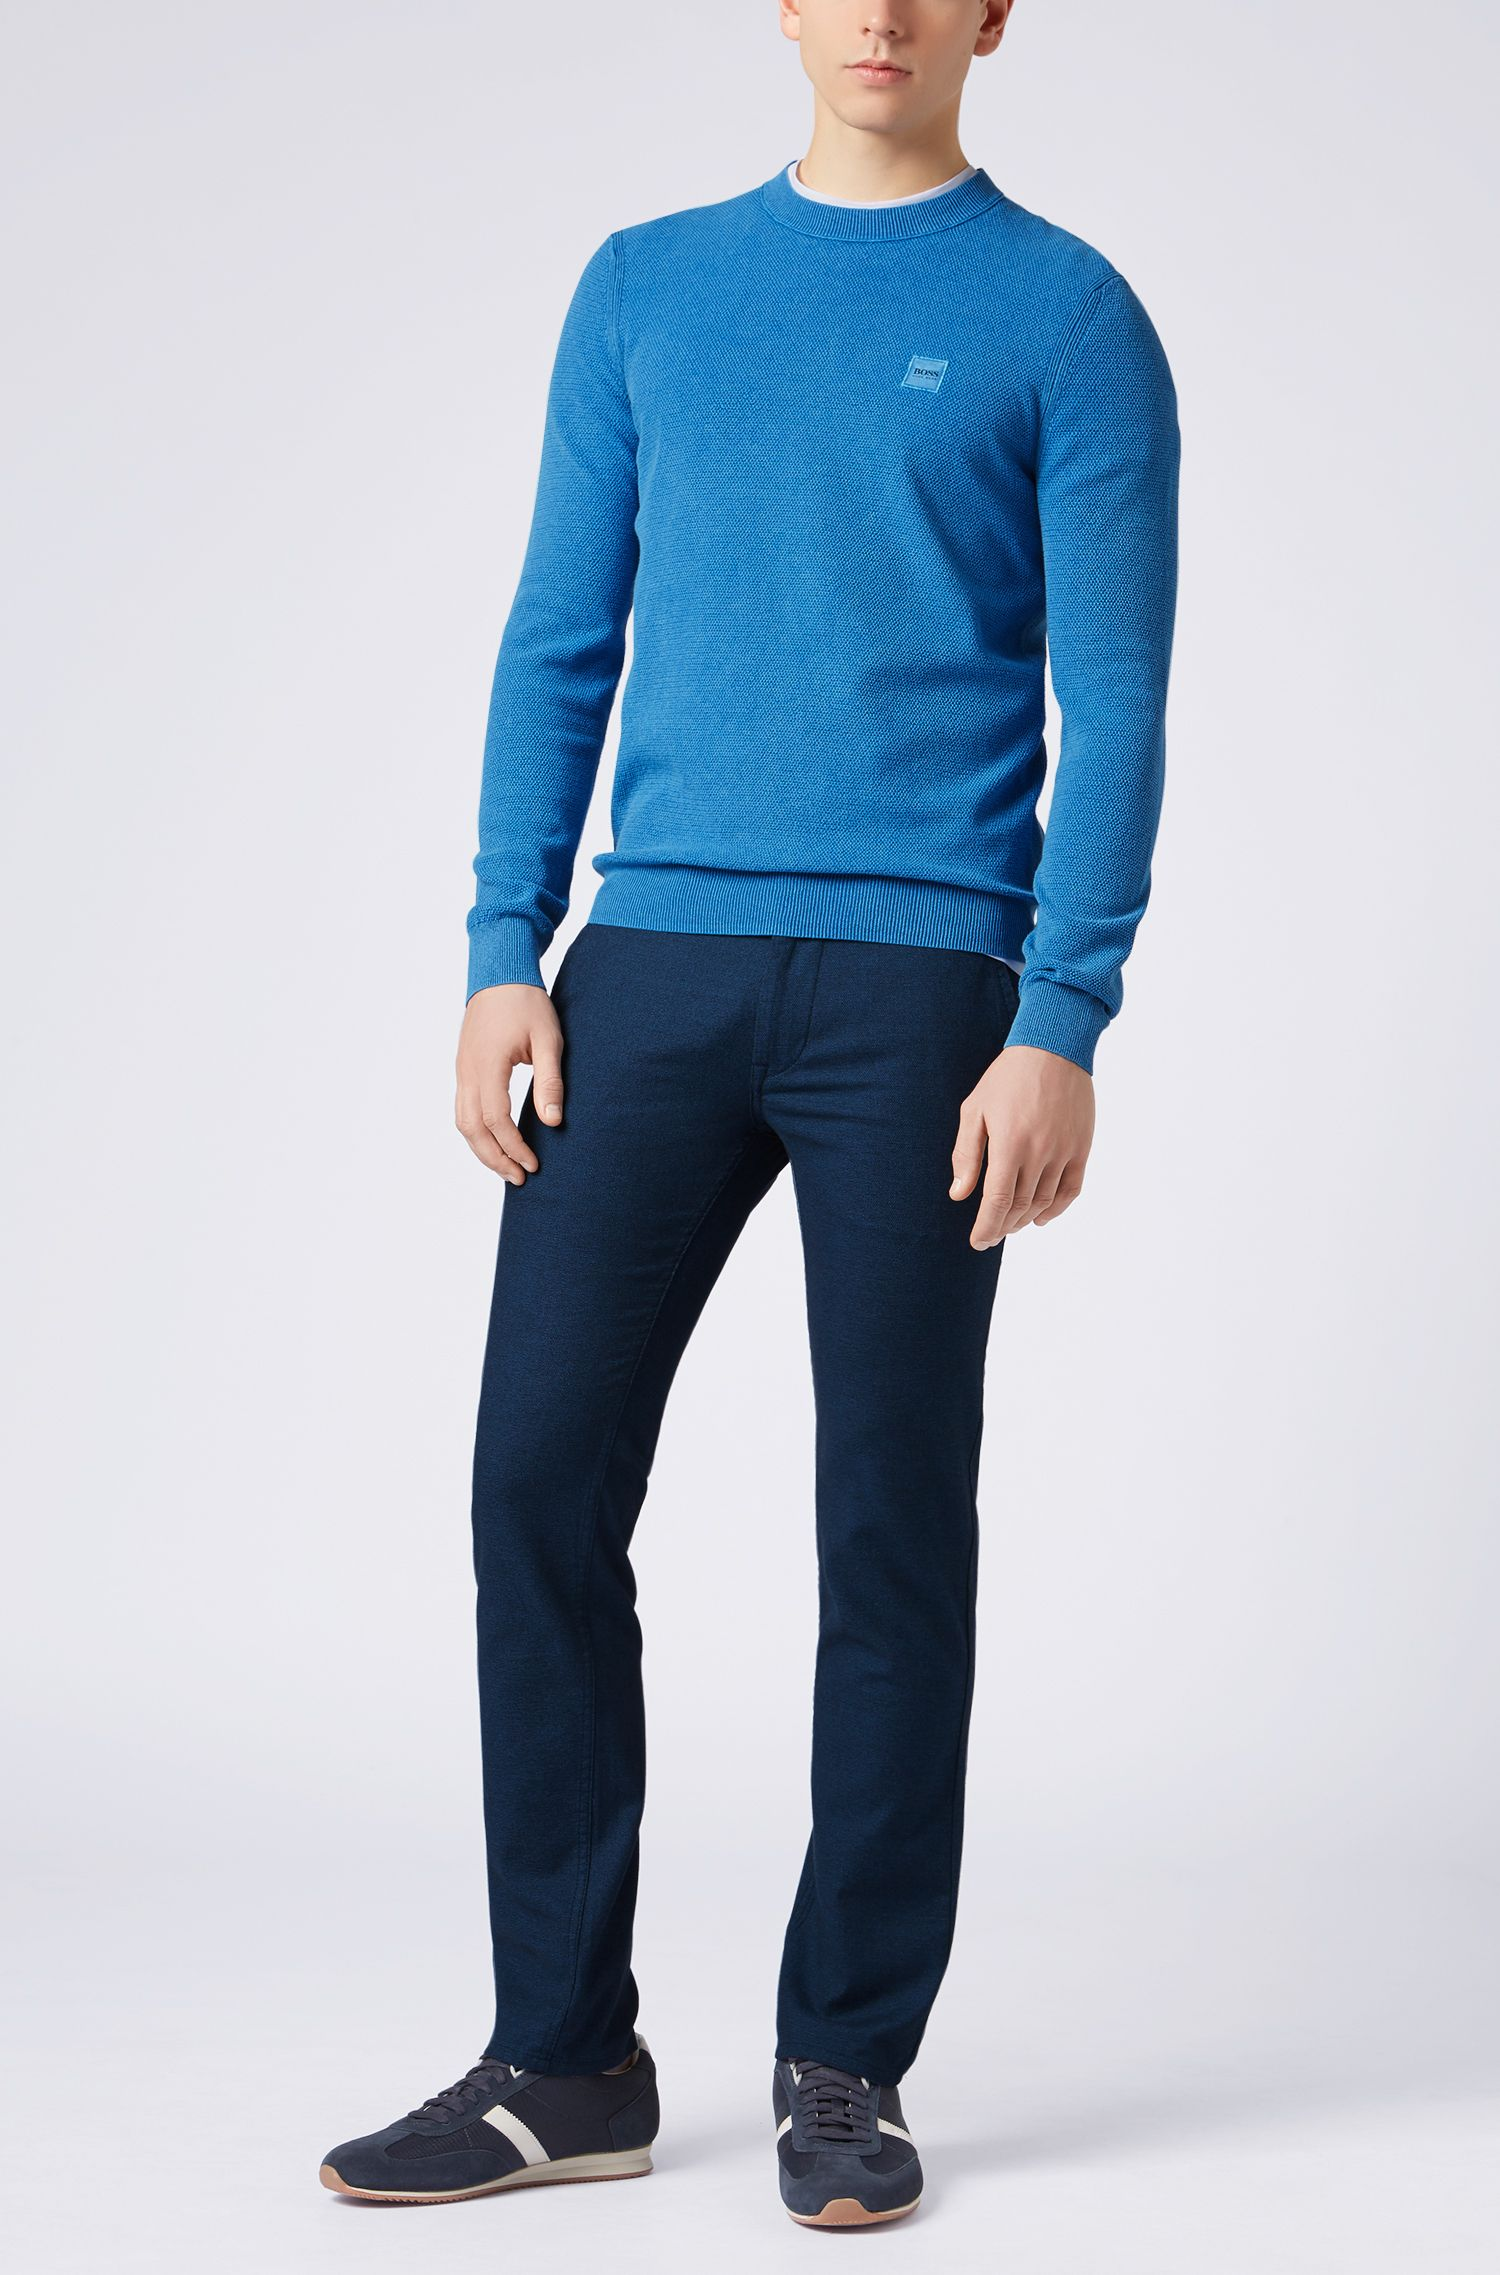 Cotton crew-neck sweater with all-over texture